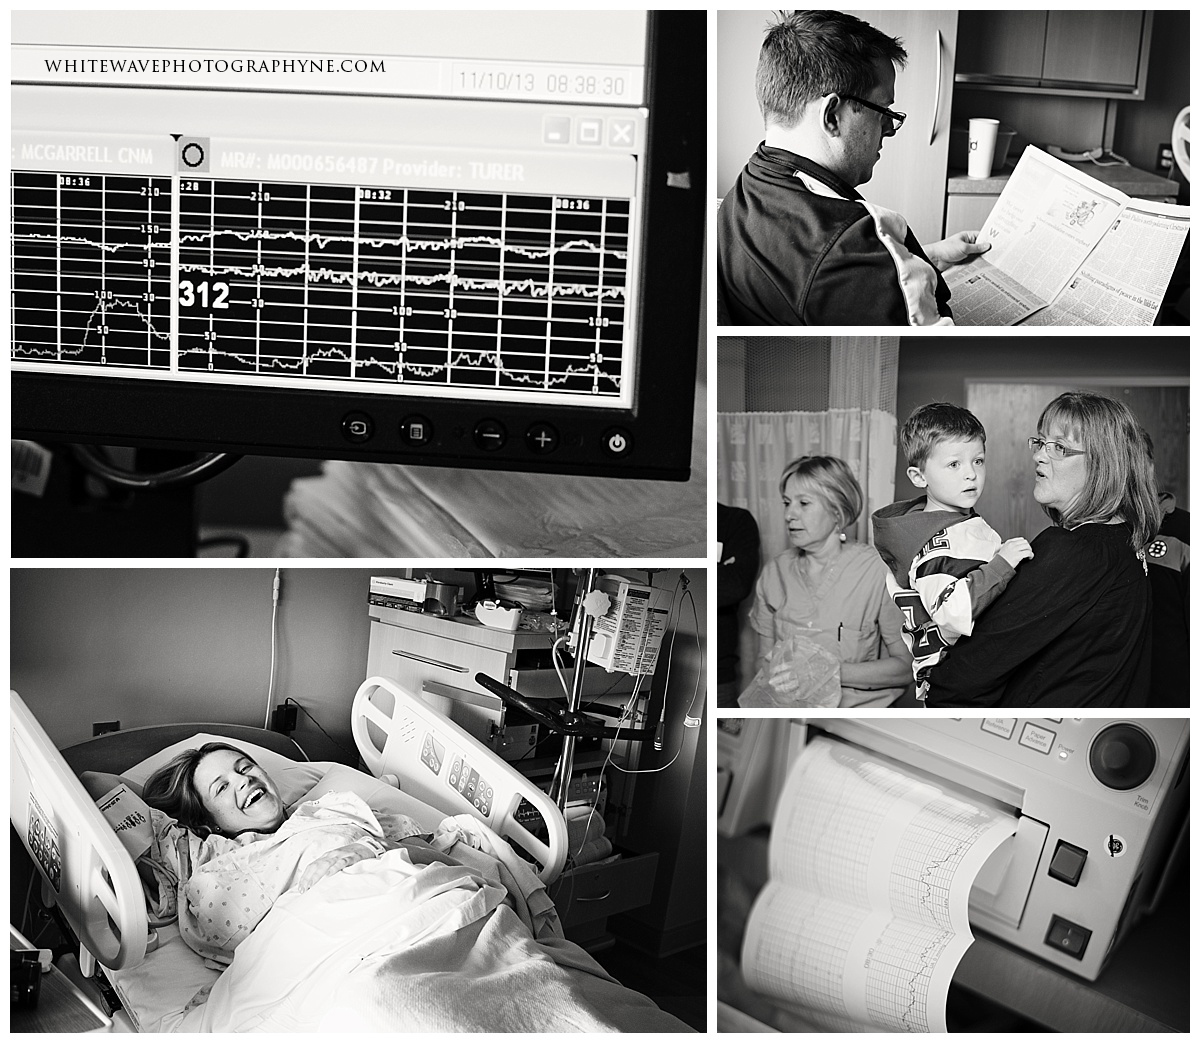 a collection of images of behind the scenes in a hospital labor room as a mum lays in labor.